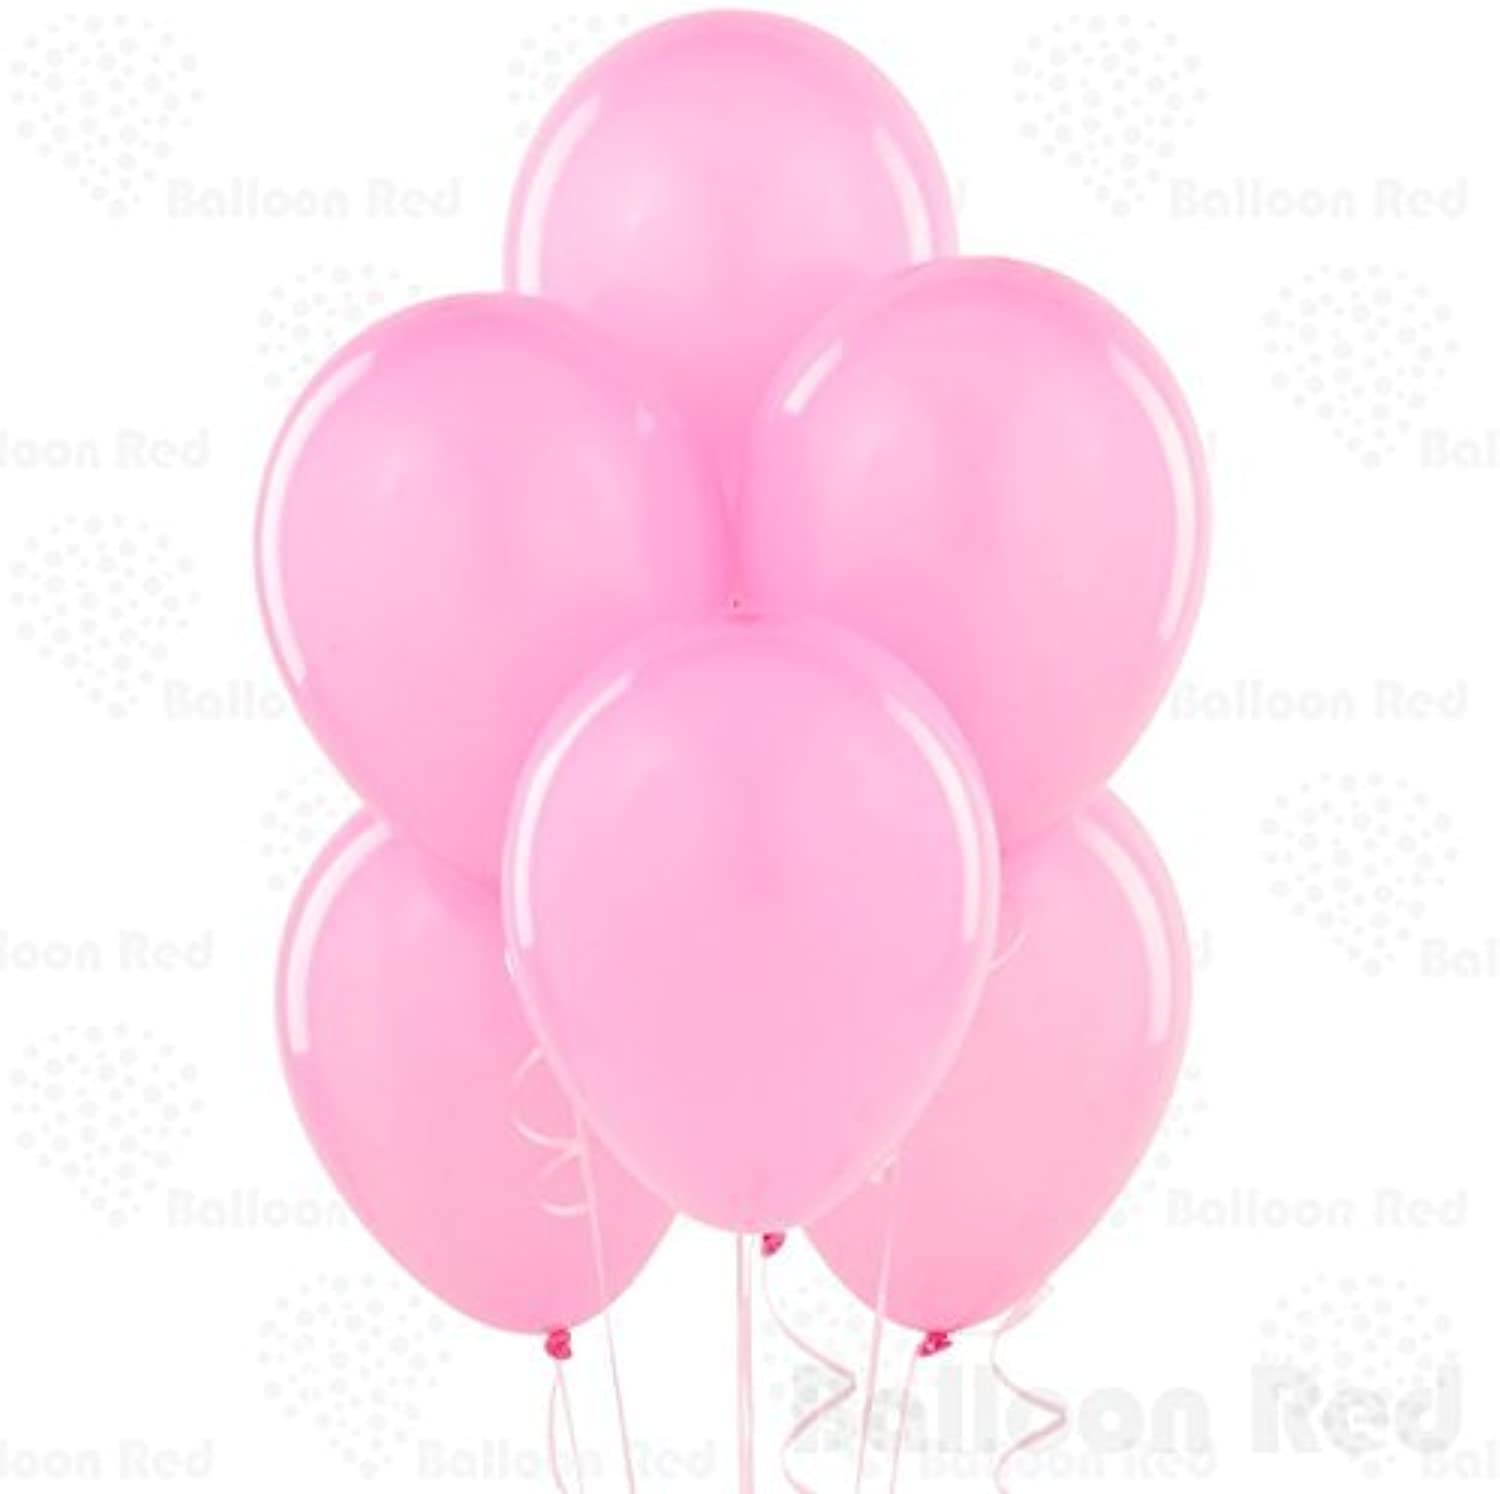 12 Inch Latex Balloons (Premium Helium Quality), Pack of 144, Powder Pink by Balloon Red